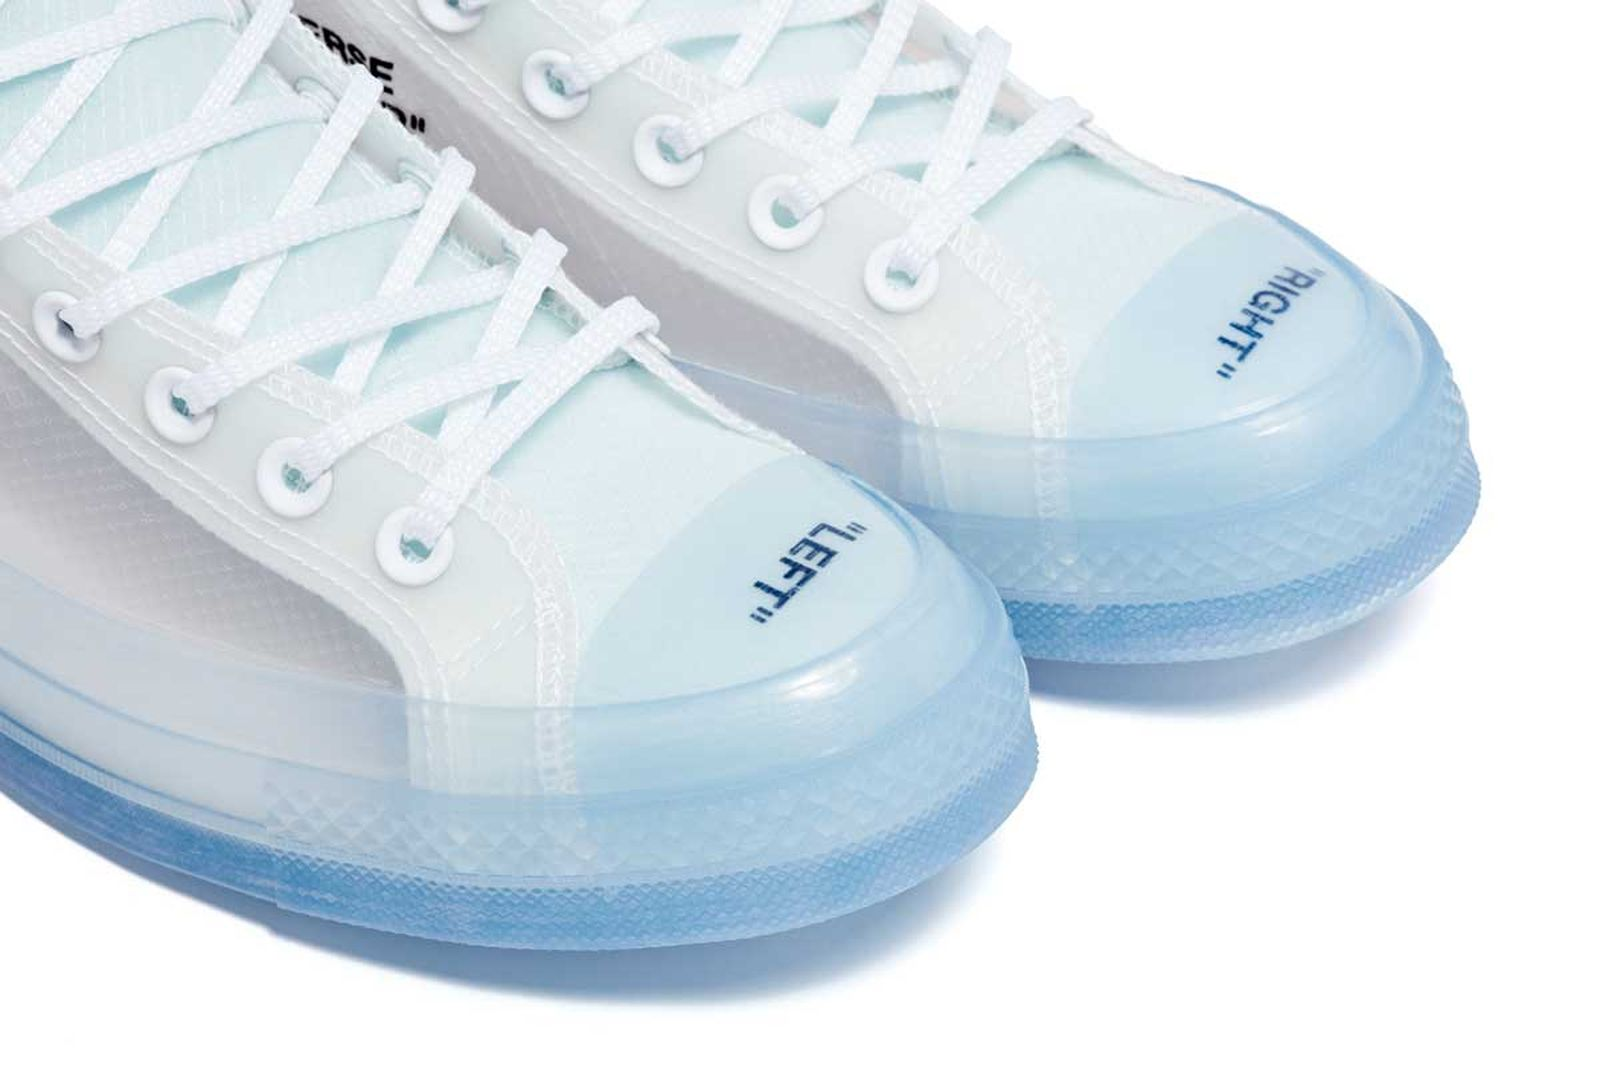 virgil-abloh-converse-all-star-release-date-price-2018-08